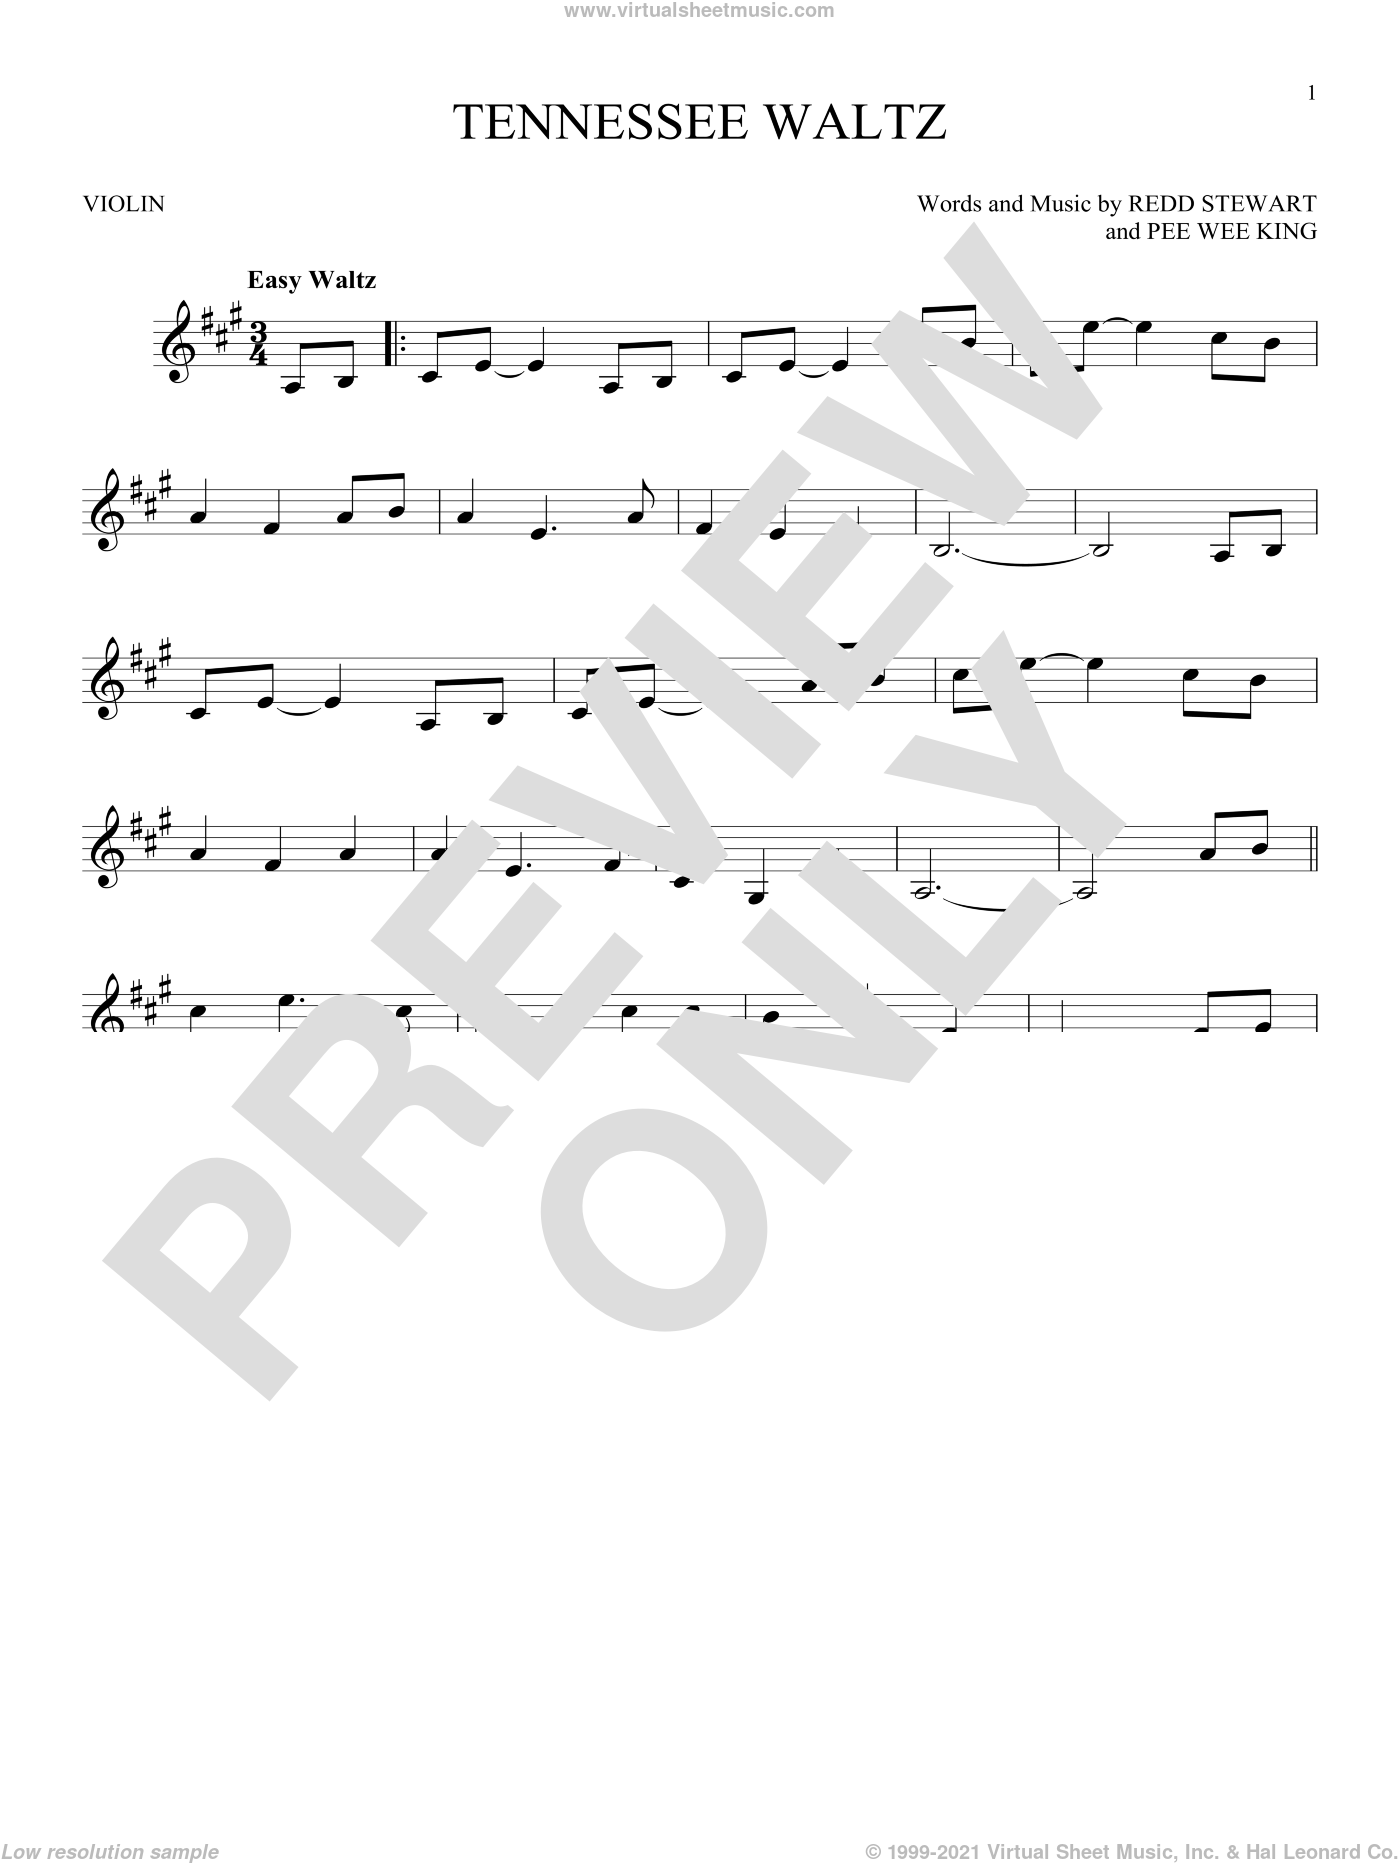 Tennessee Waltz sheet music for violin solo by Redd Stewart and Patti Page. Score Image Preview.